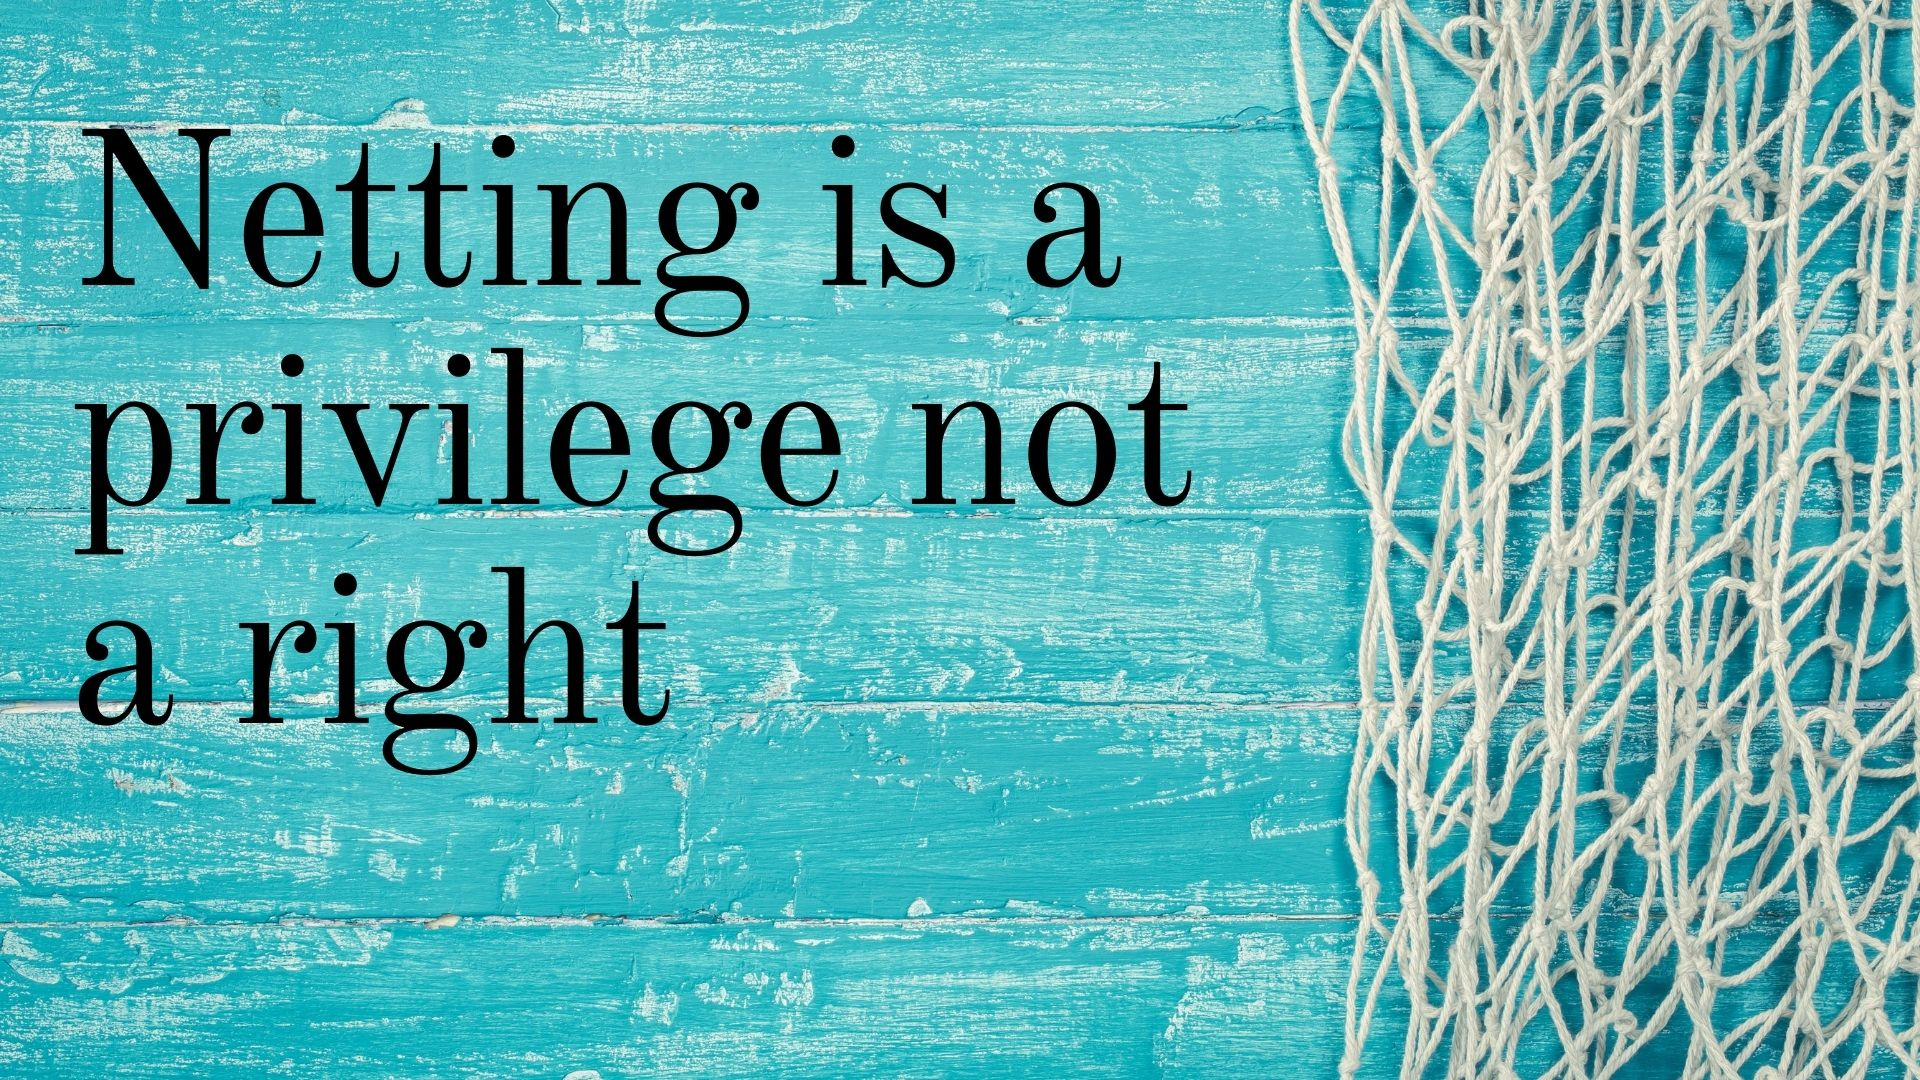 Netting is a privilege not a right 41